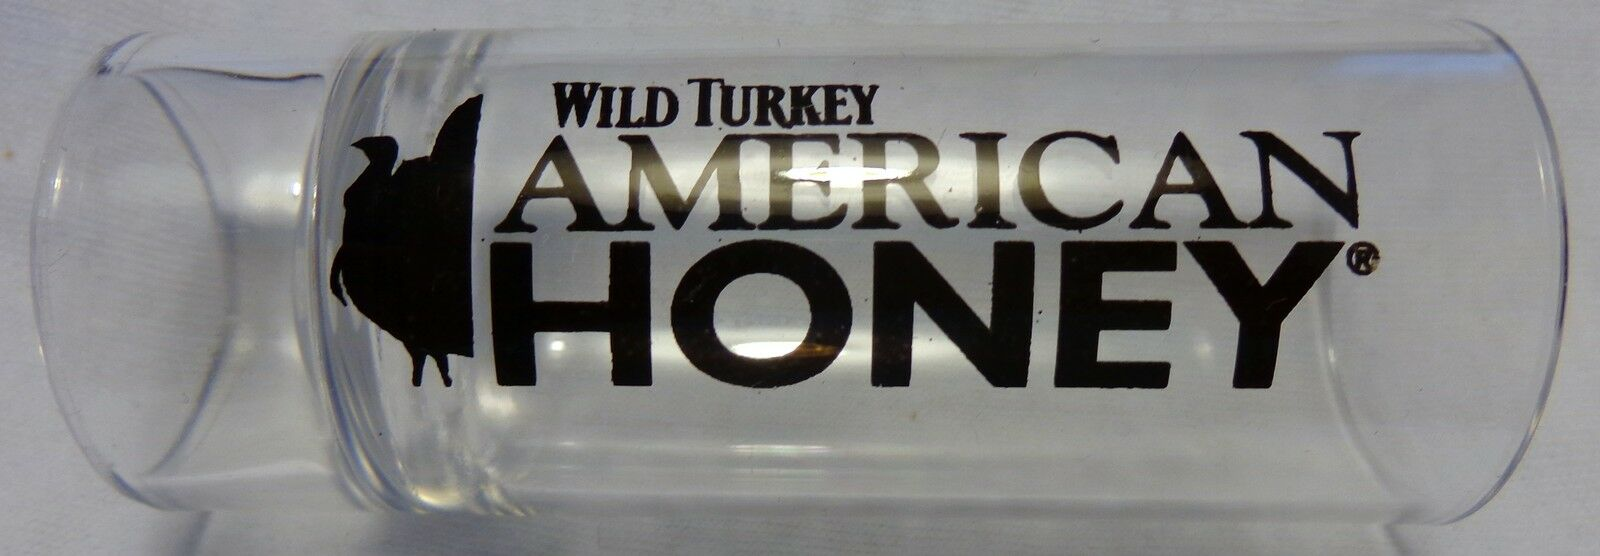 NEW Wild Turkey American Honey Clear Plastic Frame Sunglasses